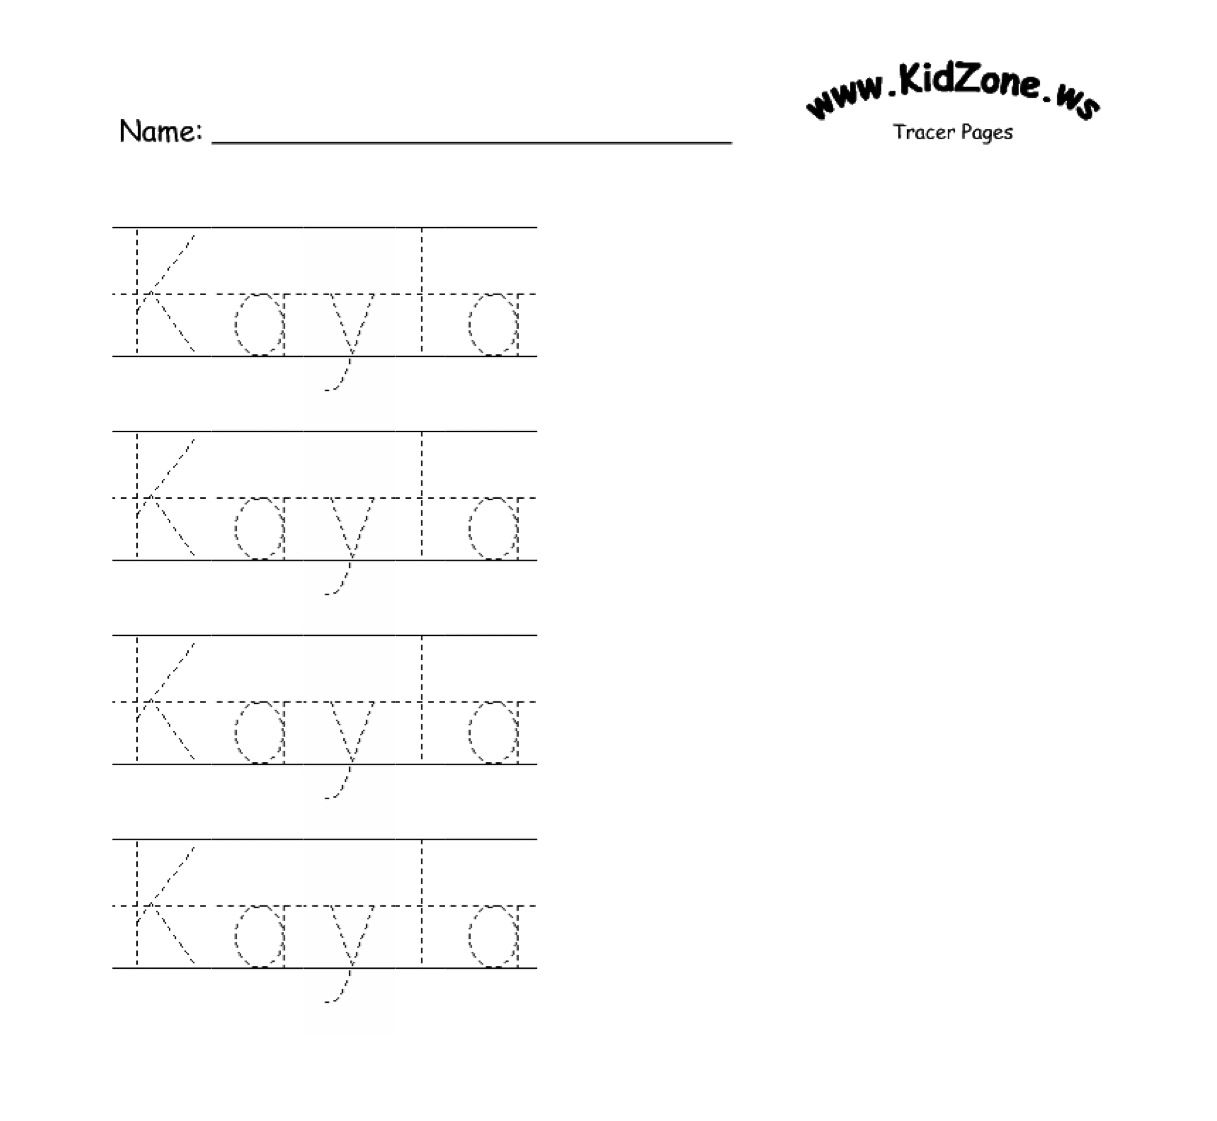 Custom Name Tracer Pages   Preschool Writing, Name Tracing regarding Name Tracing Generator Cursive